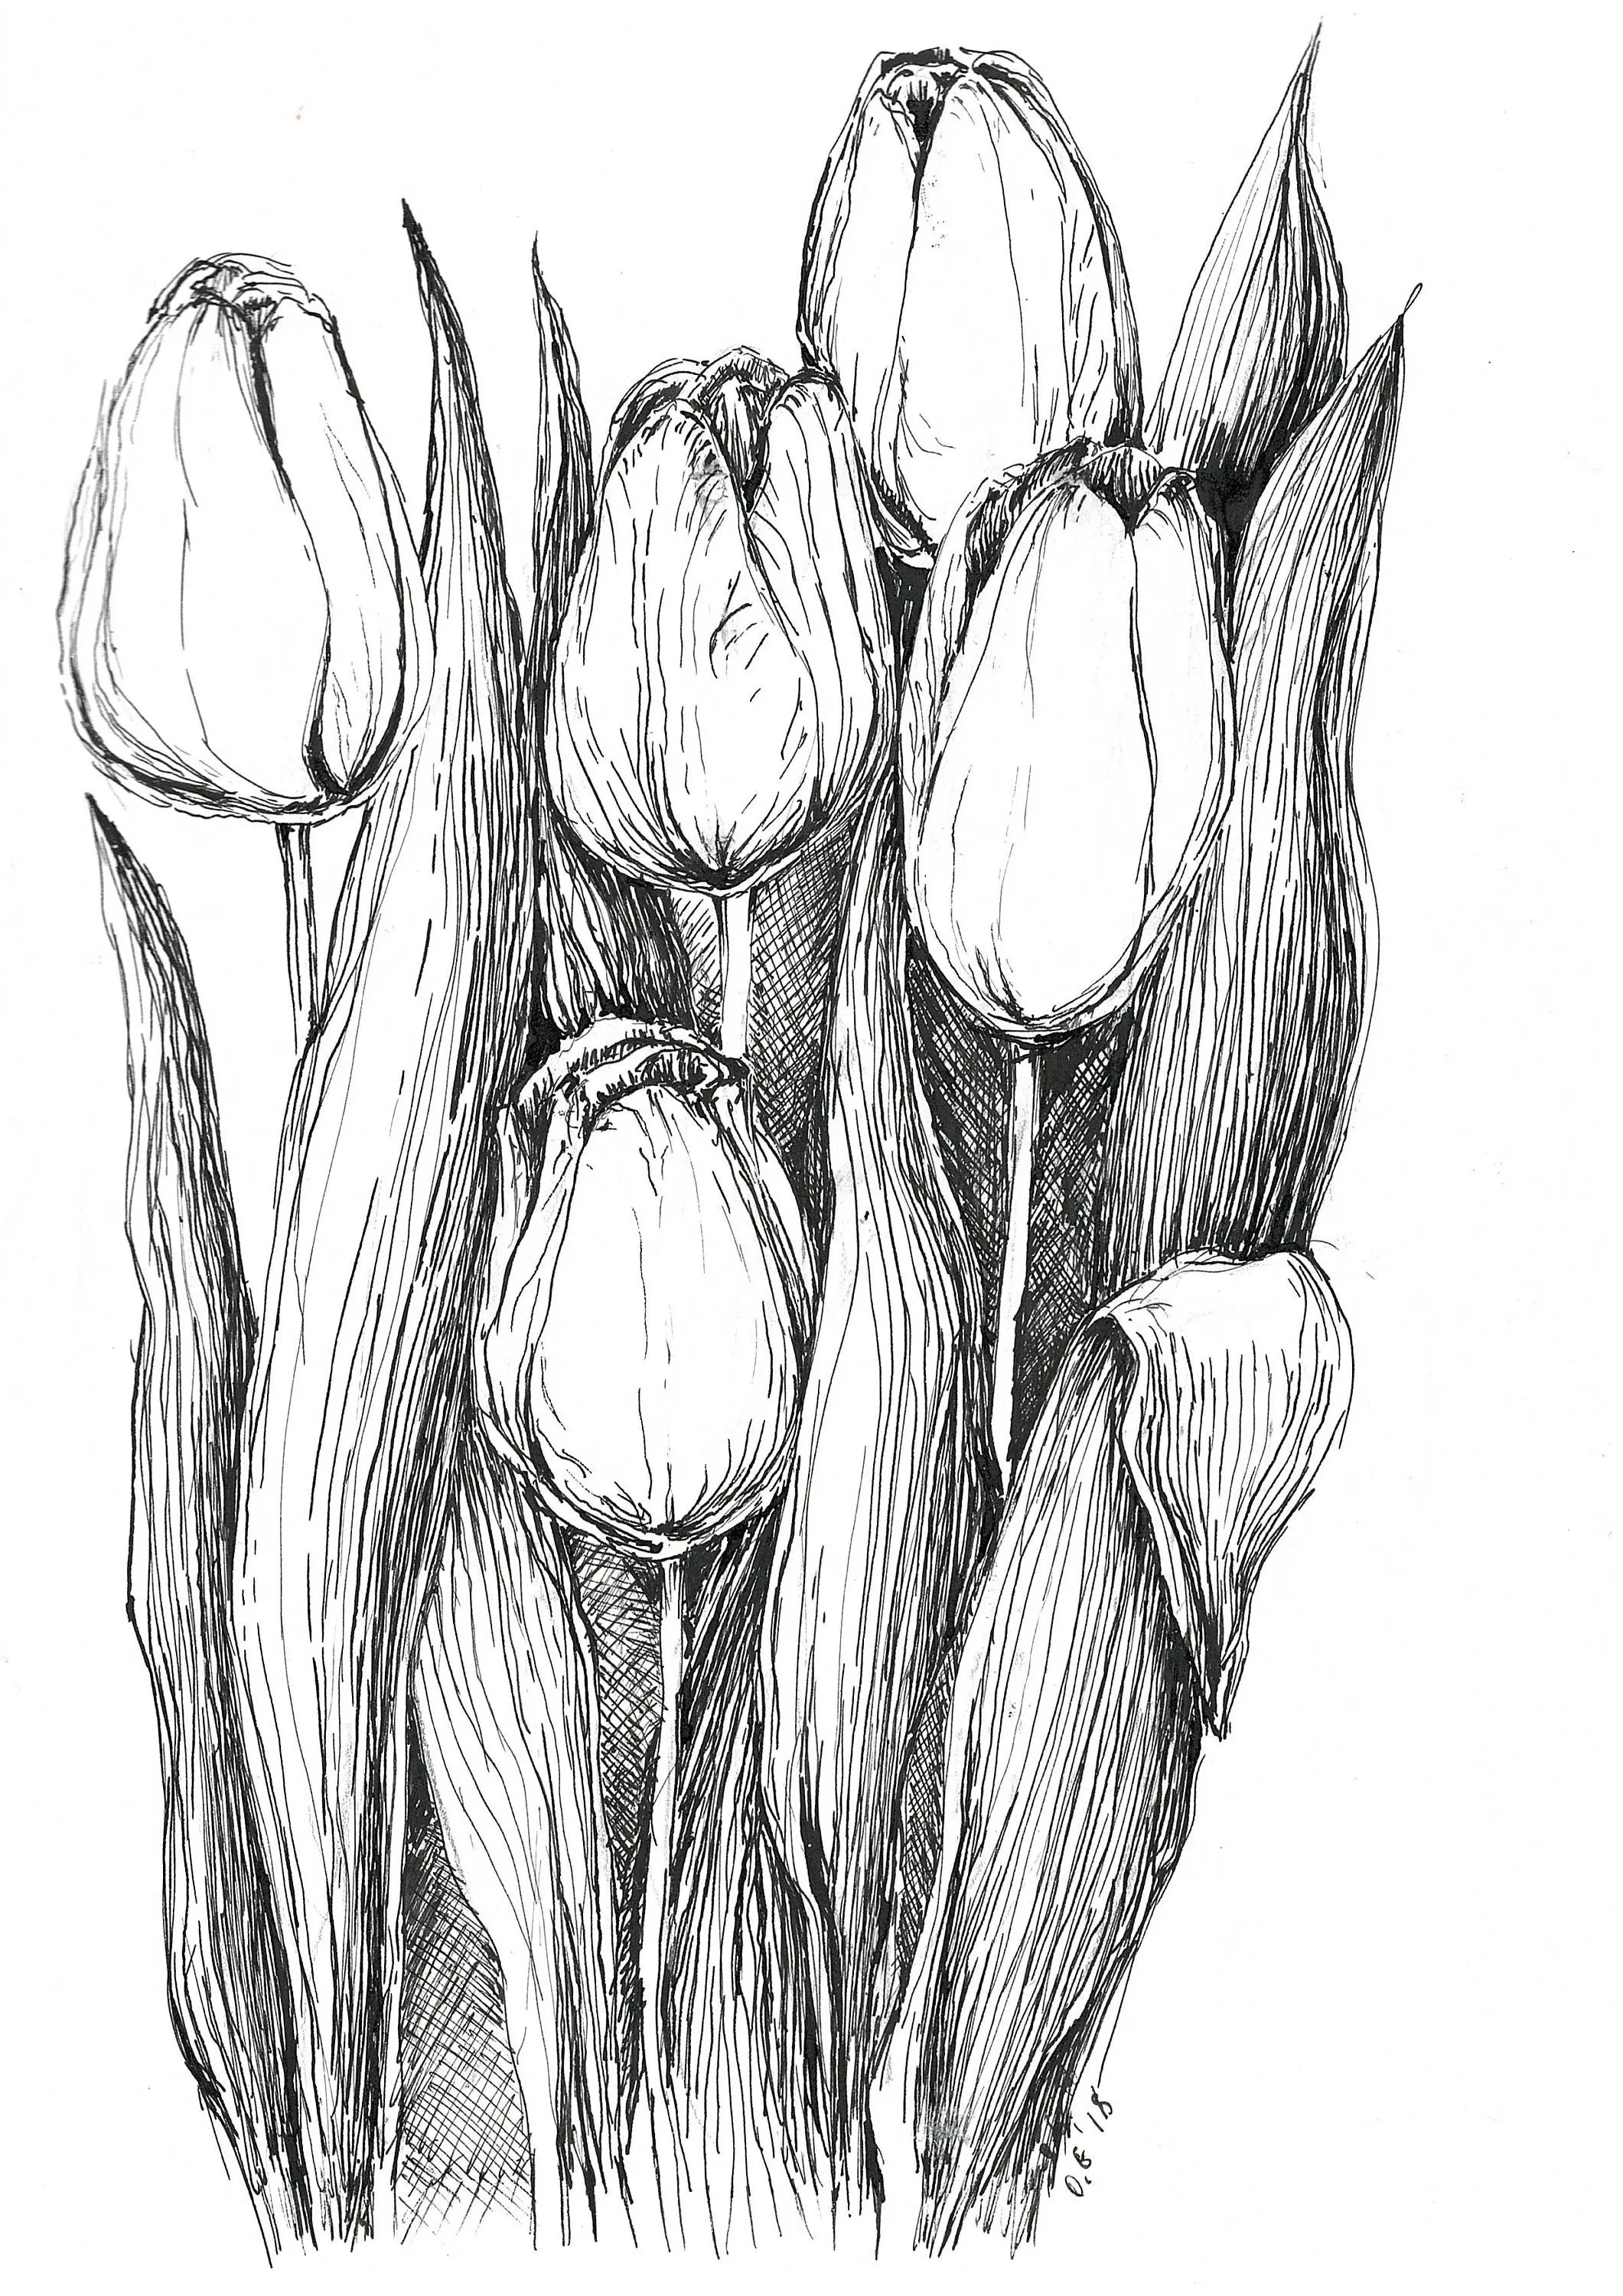 Tulips Sketch Pen And Ink Art Original Sketches Black And